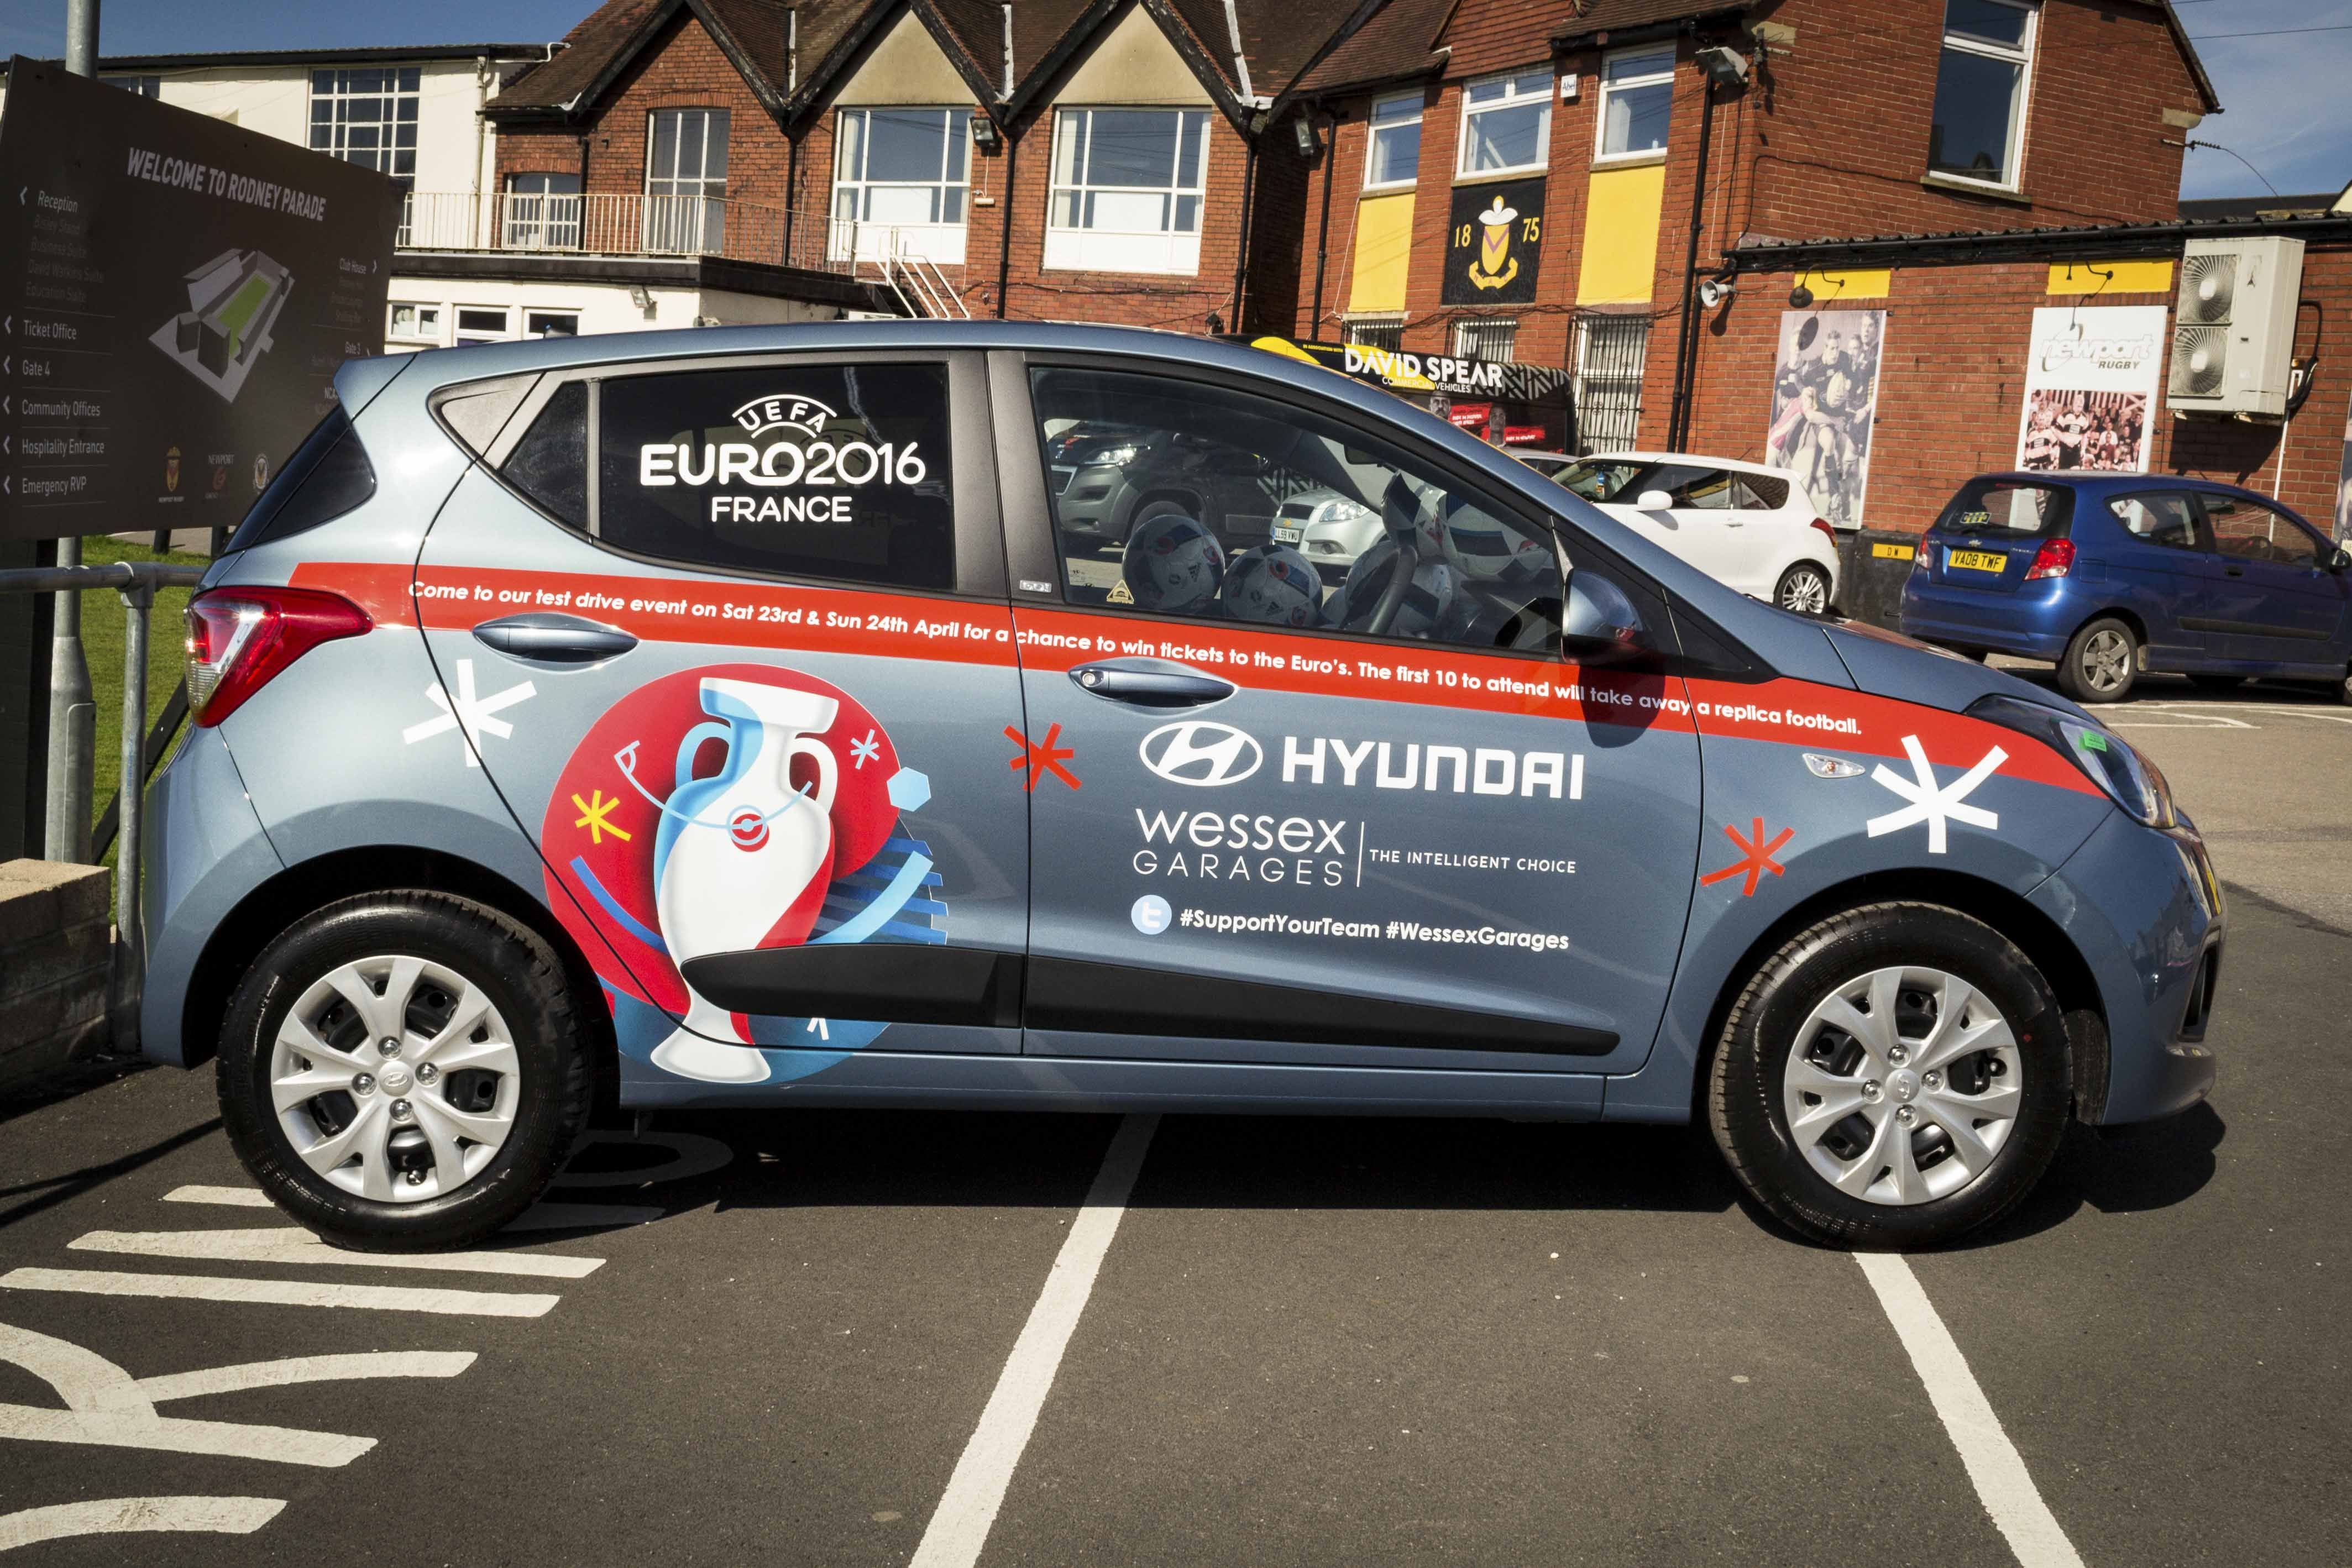 Did you see our limited edition Euro2016 Hyundai i10Go